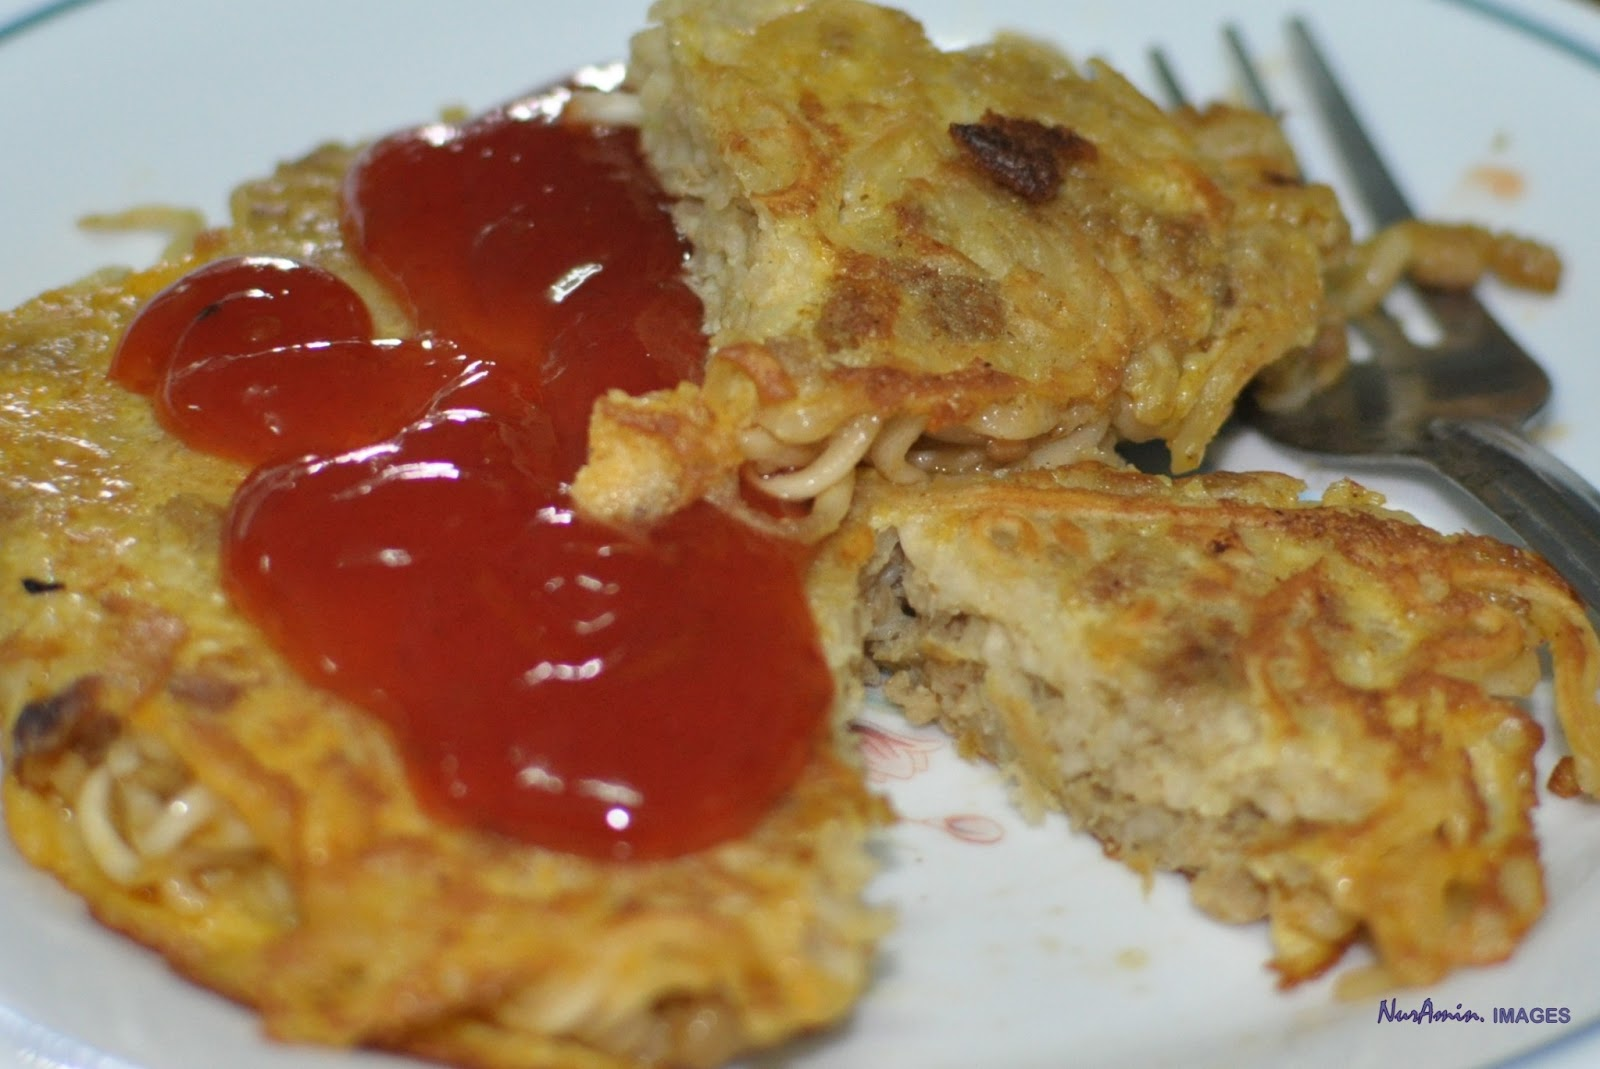 How to Make Murtabak Maggi | SHARE delicious food in Malaysia